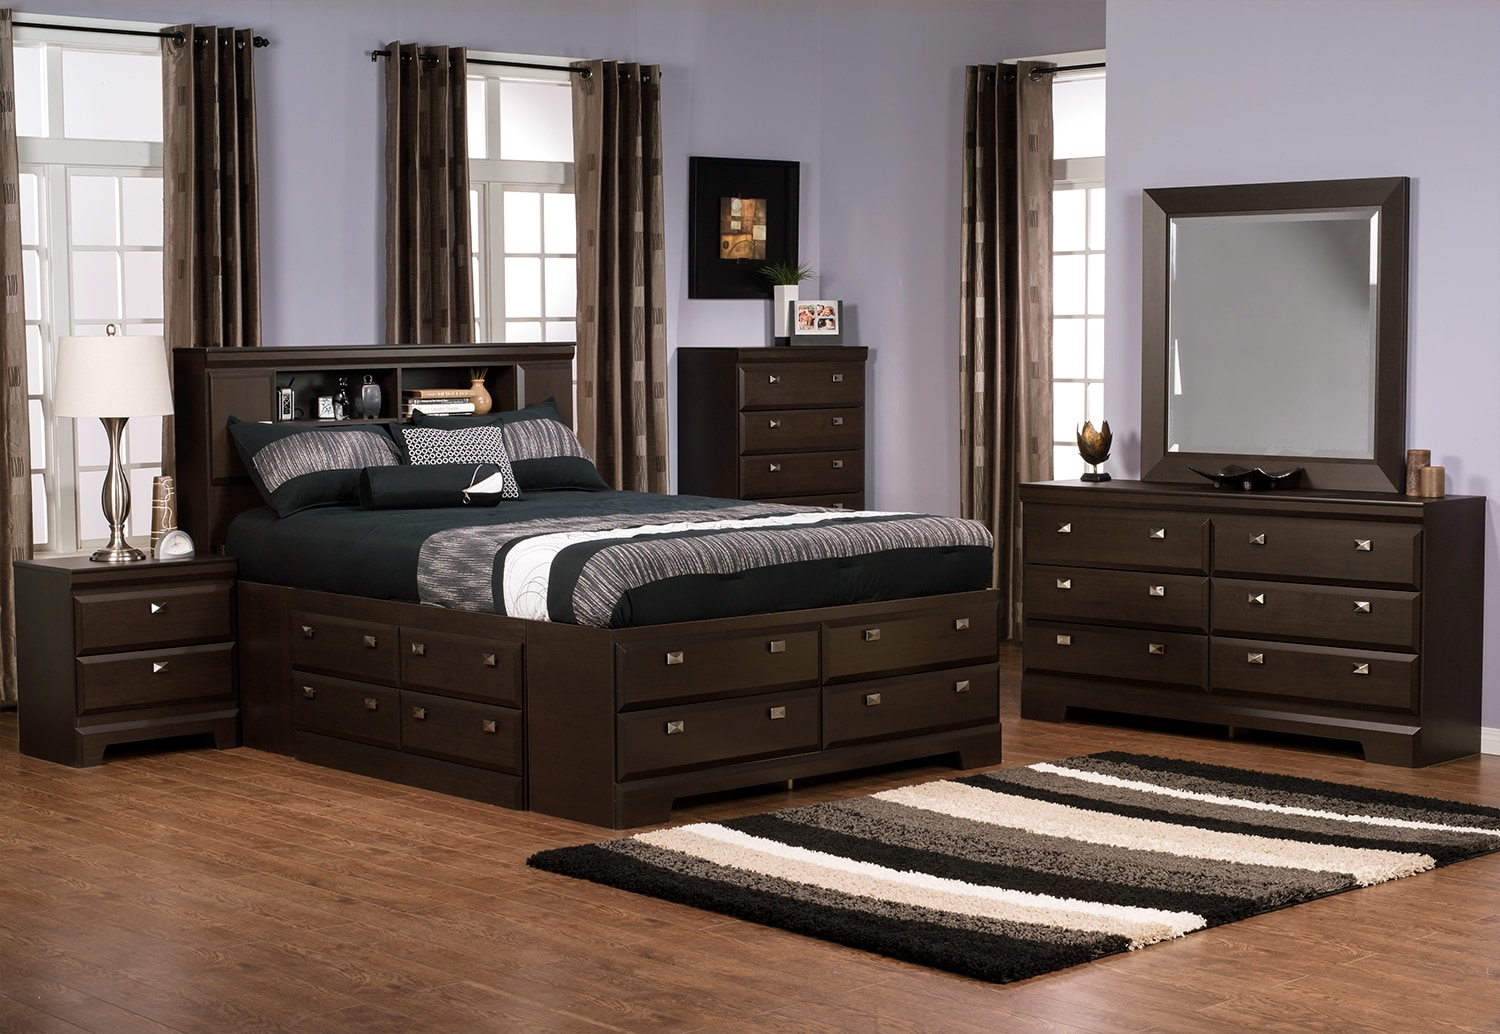 Bedroom Furniture - Yorkdale 7-Piece Queen Bookcase Storage Bedroom Package